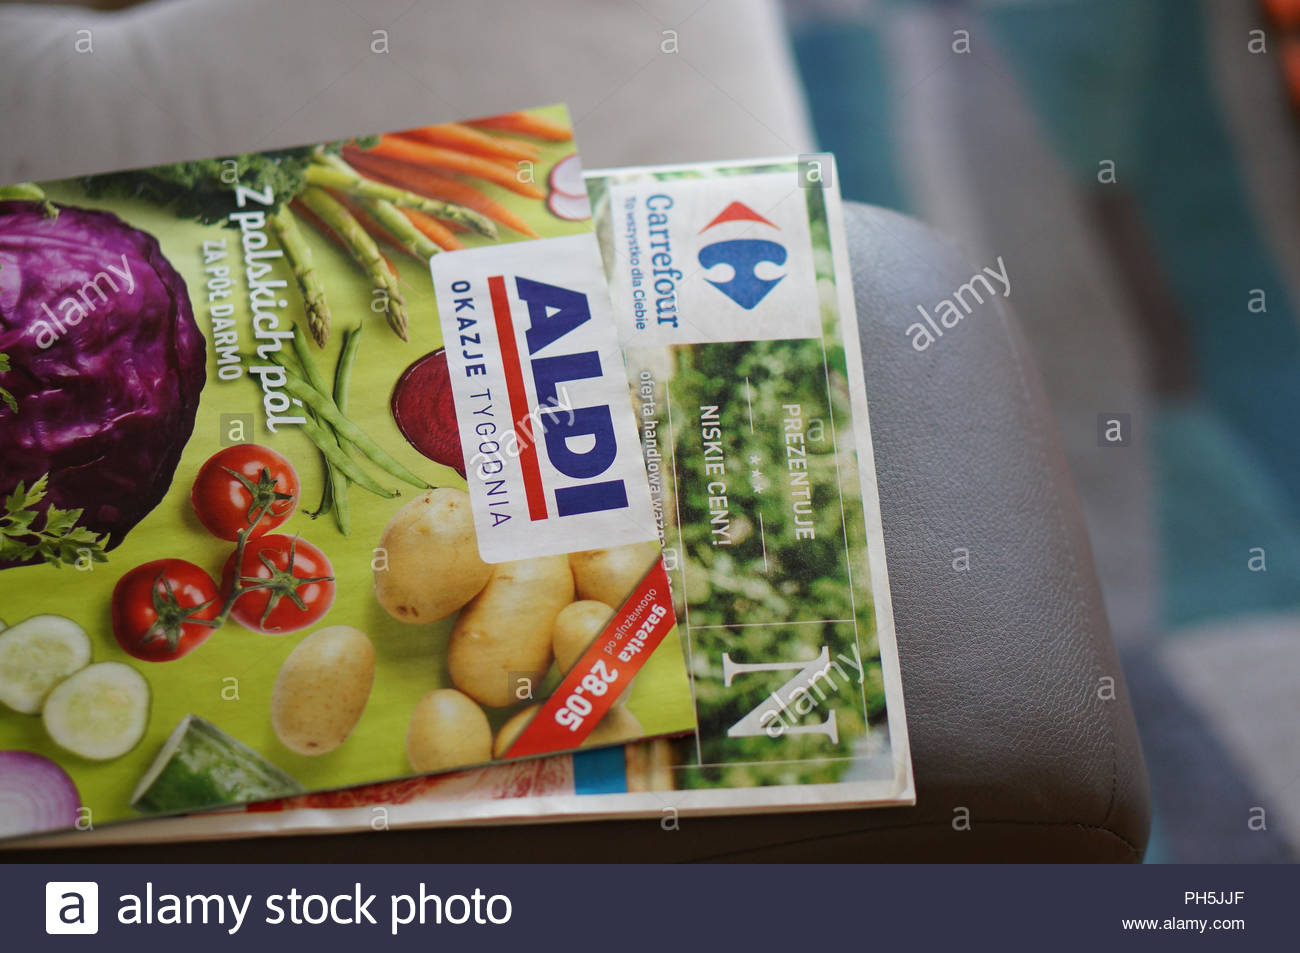 German Aldi and French Carrefour supermarket brochures on a sofa in soft focus - Stock Image